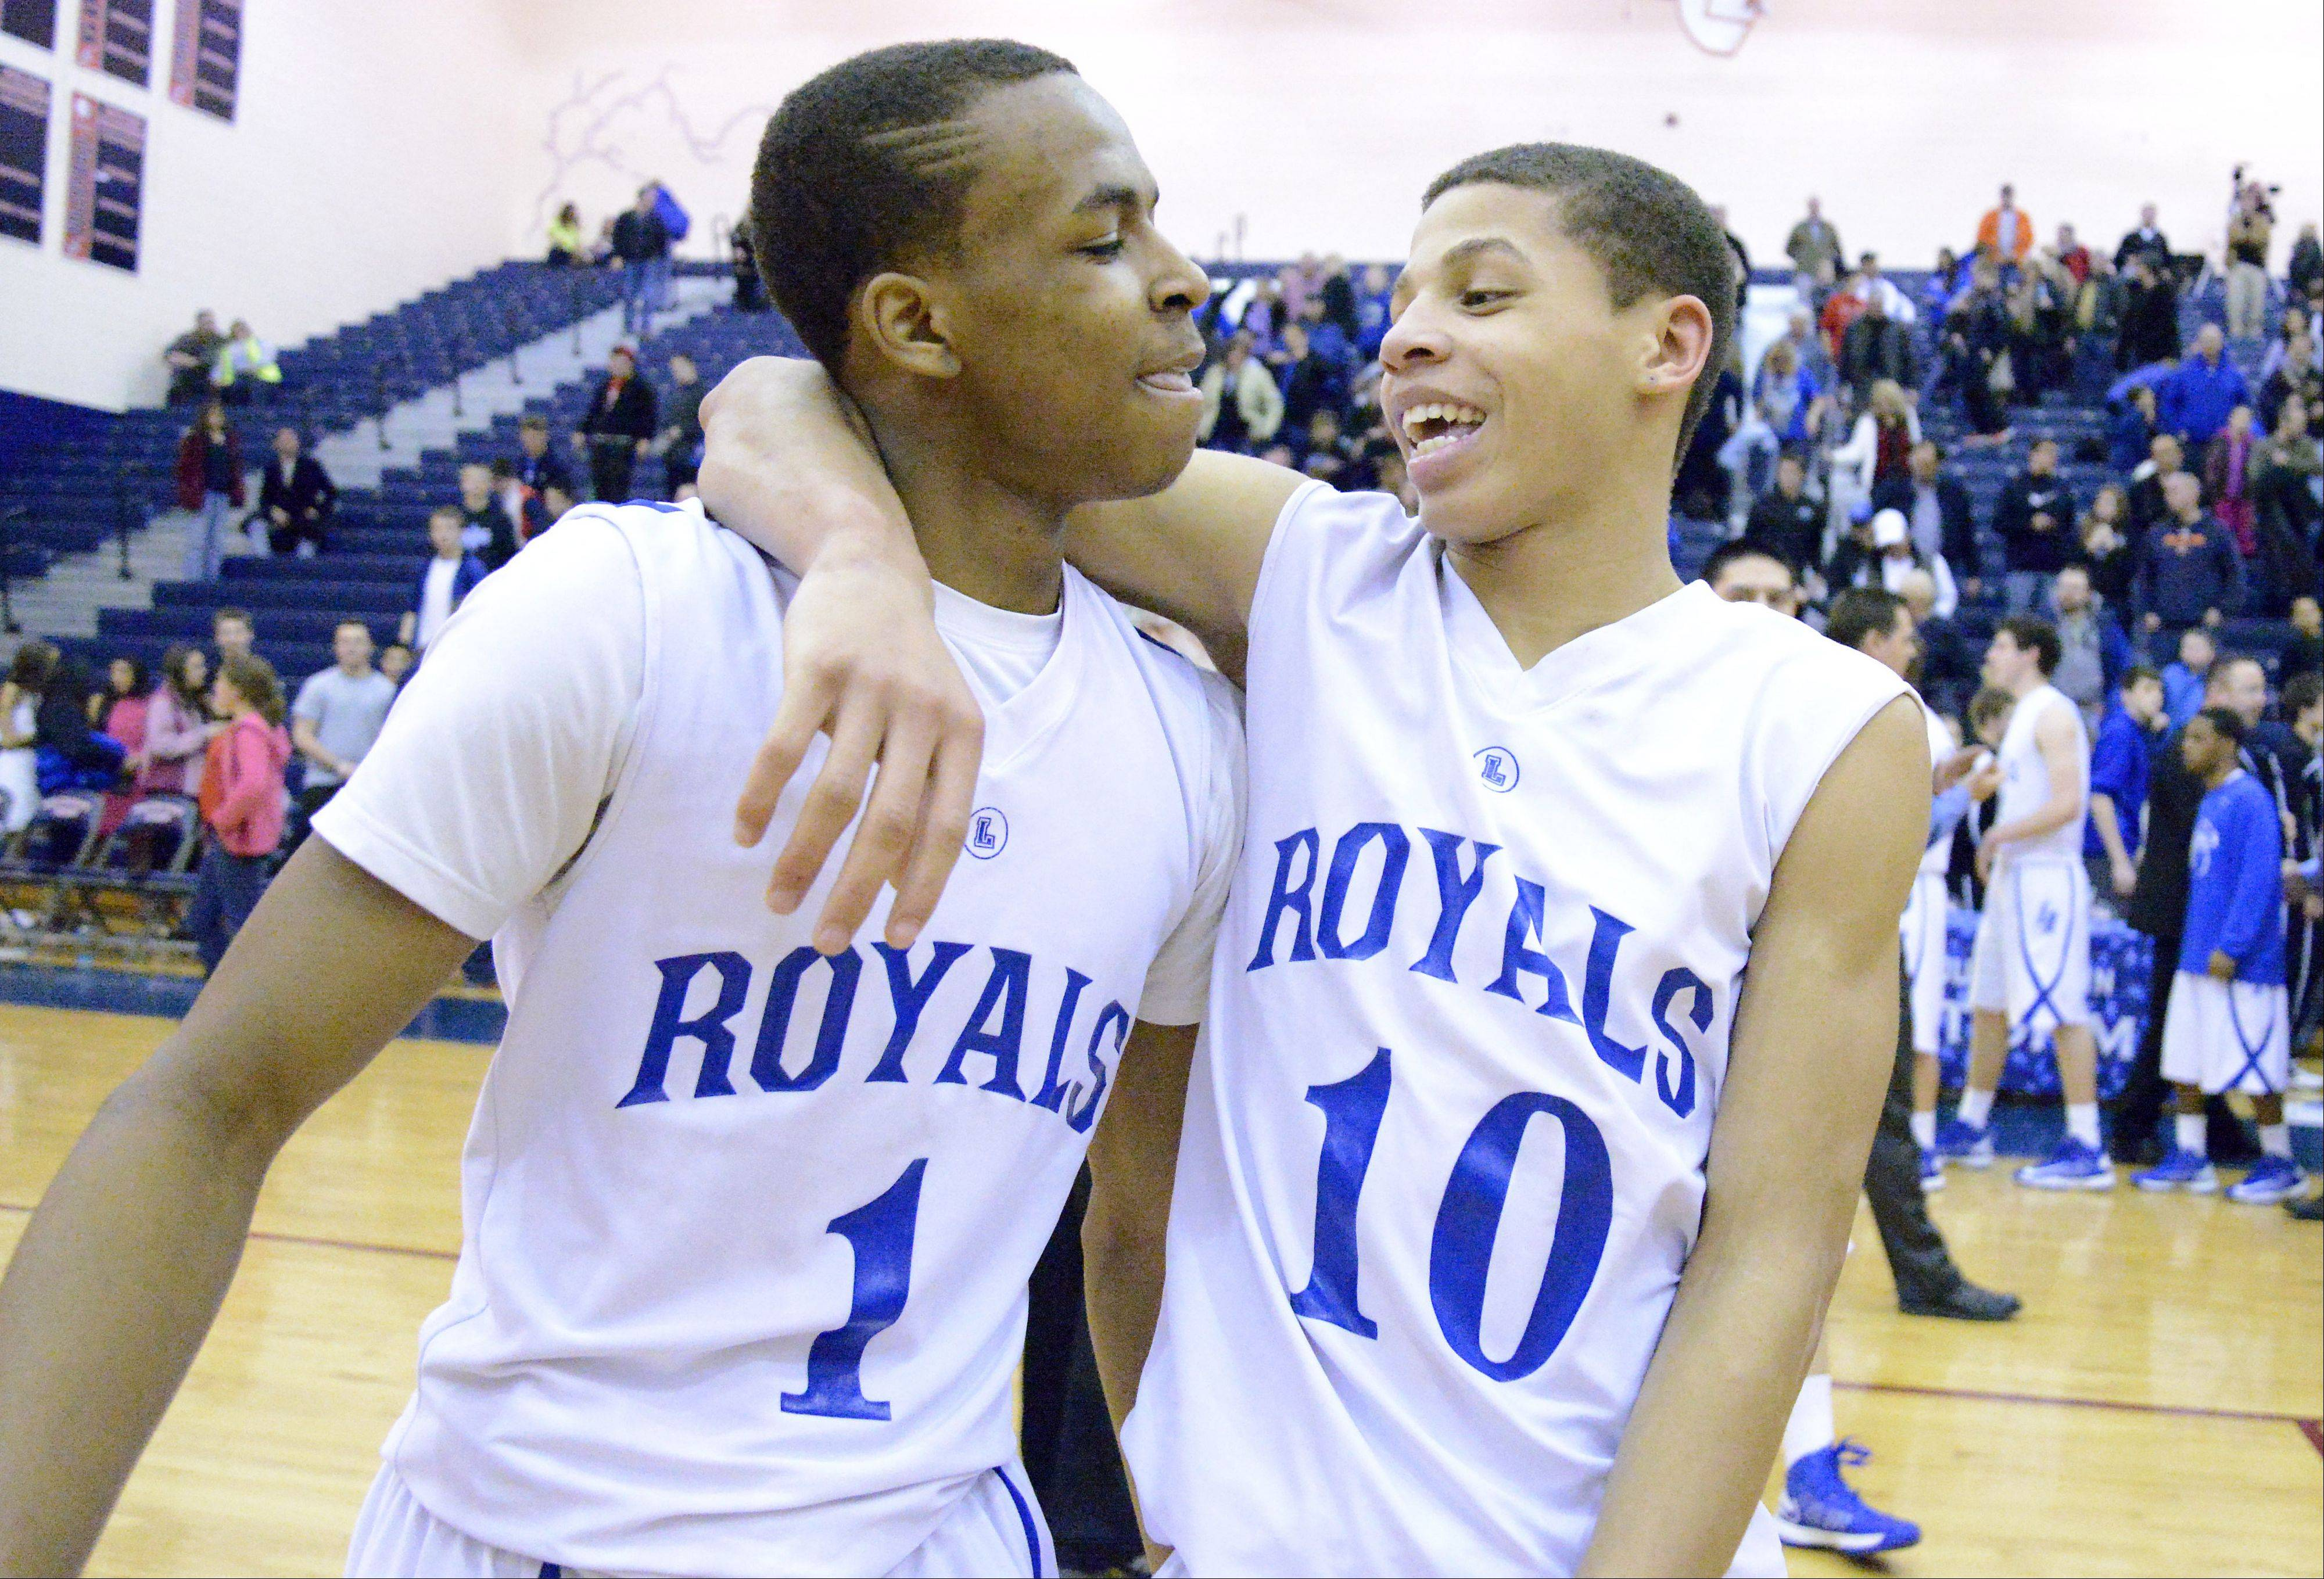 Larkin's Quantice Hunter, left, and Kendale McCullum celebrate the Royals' win over St. Charles North in the Class 4A South Elgin regional championship game on Friday. Larkin is scheduled to play Rockford Jefferson on Tuesday night in the DeKalb sectional semifinals.